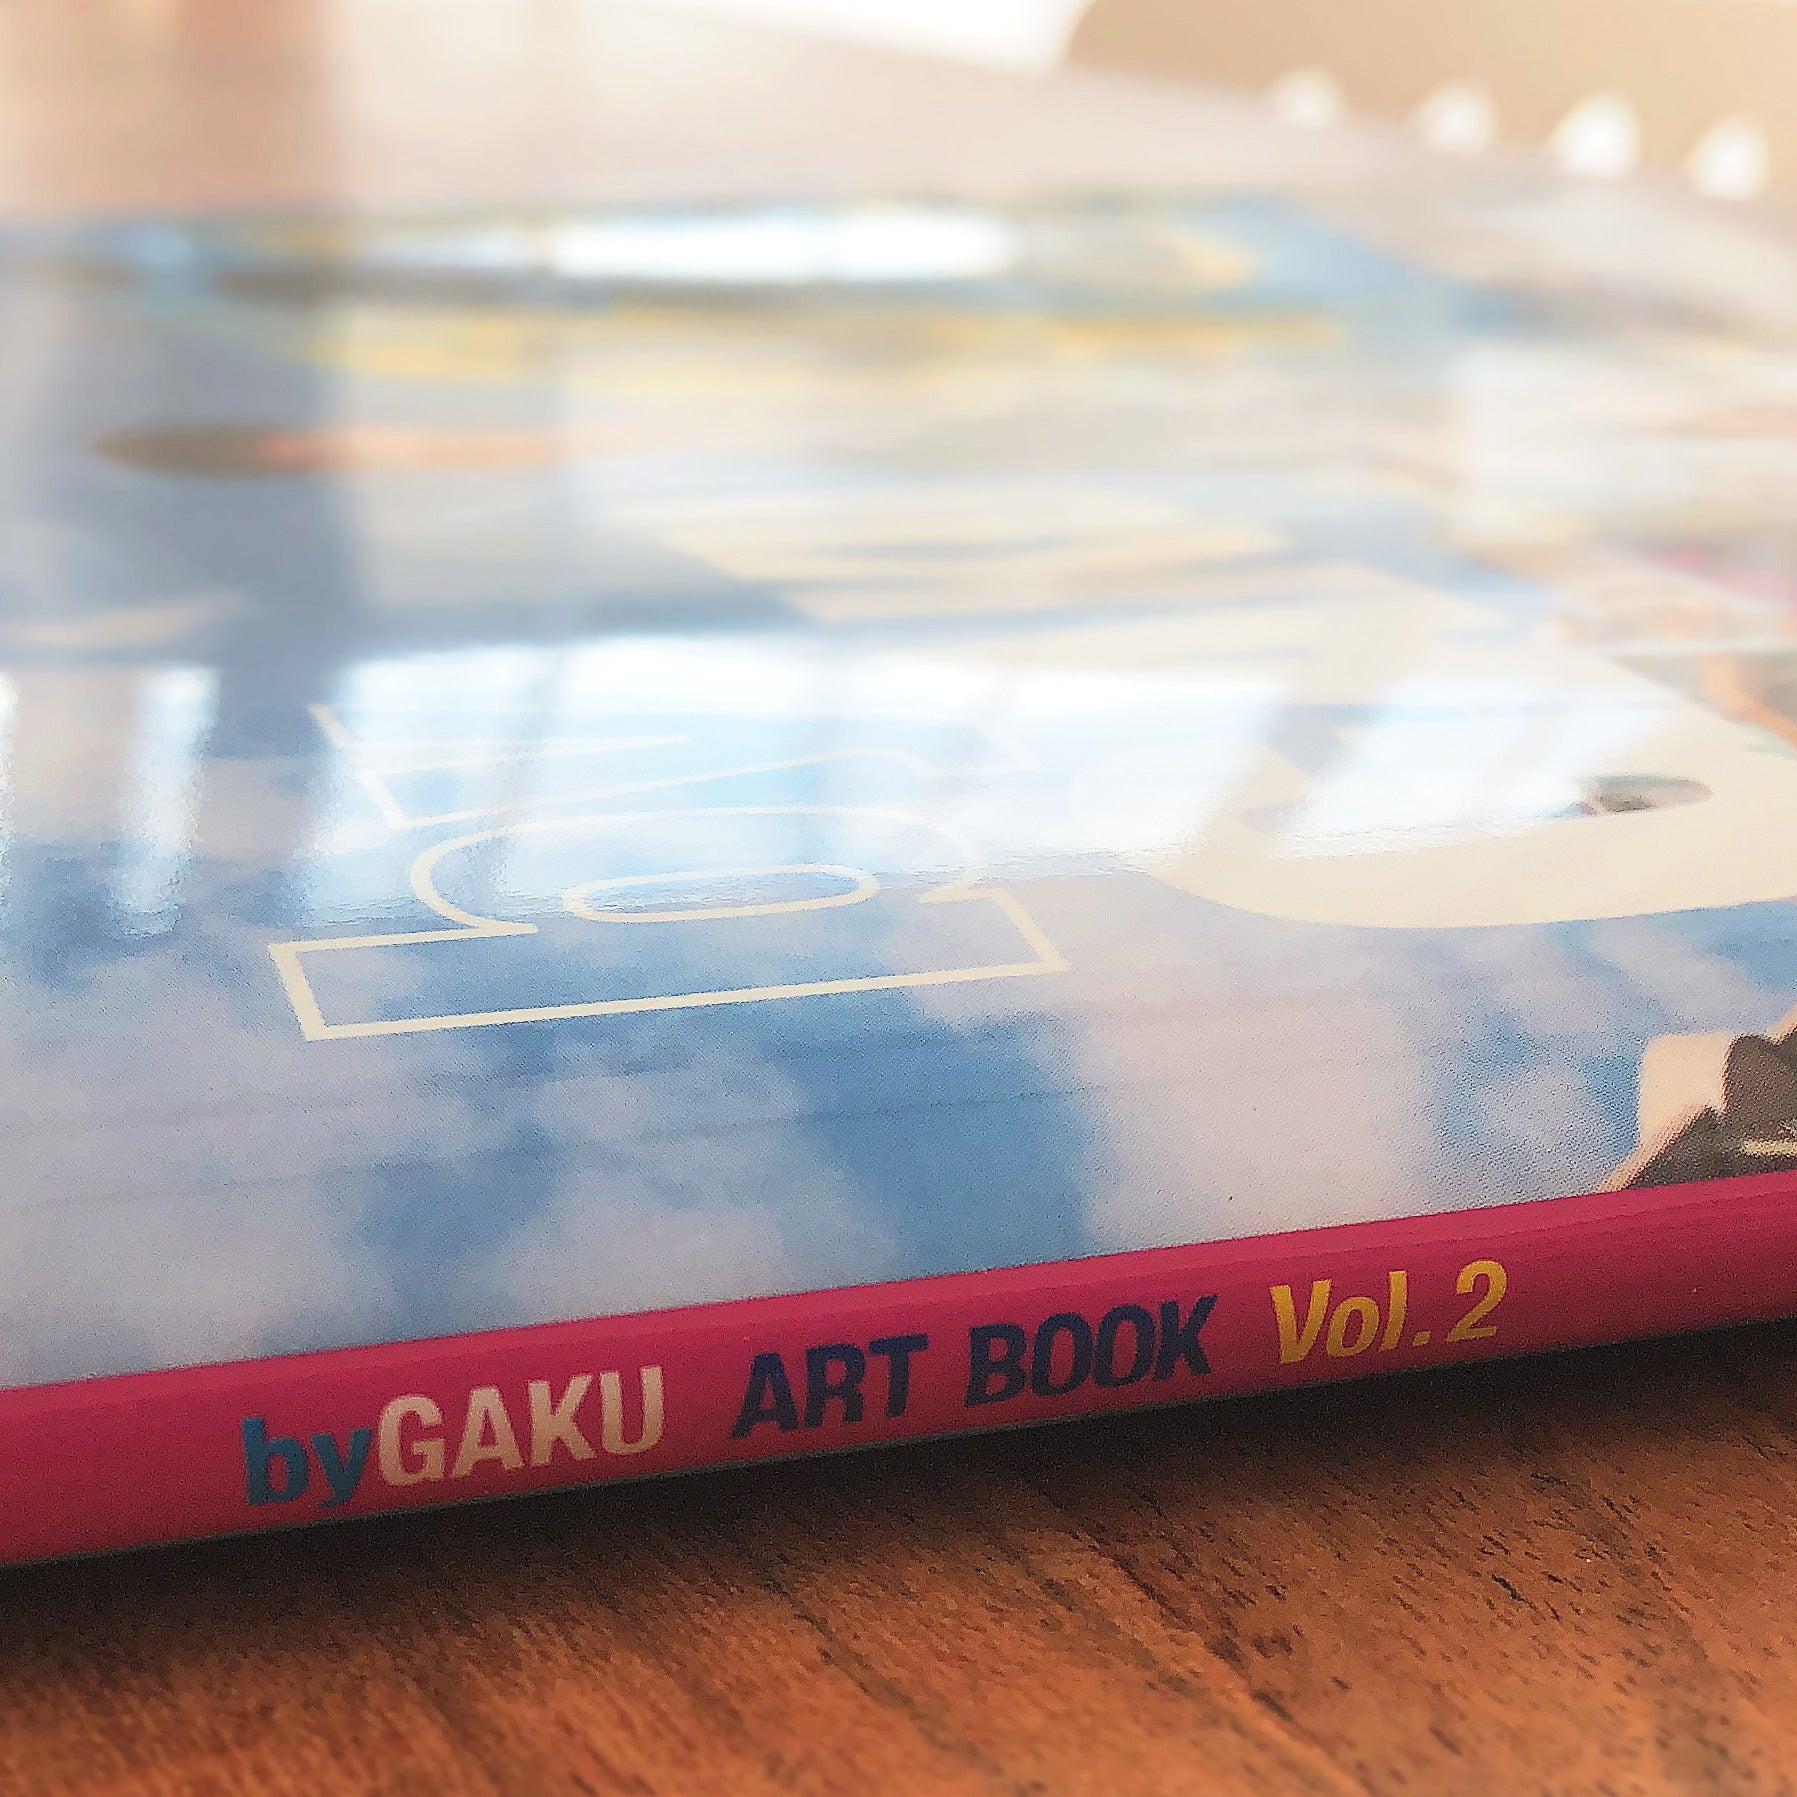 ART BOOK vol.2